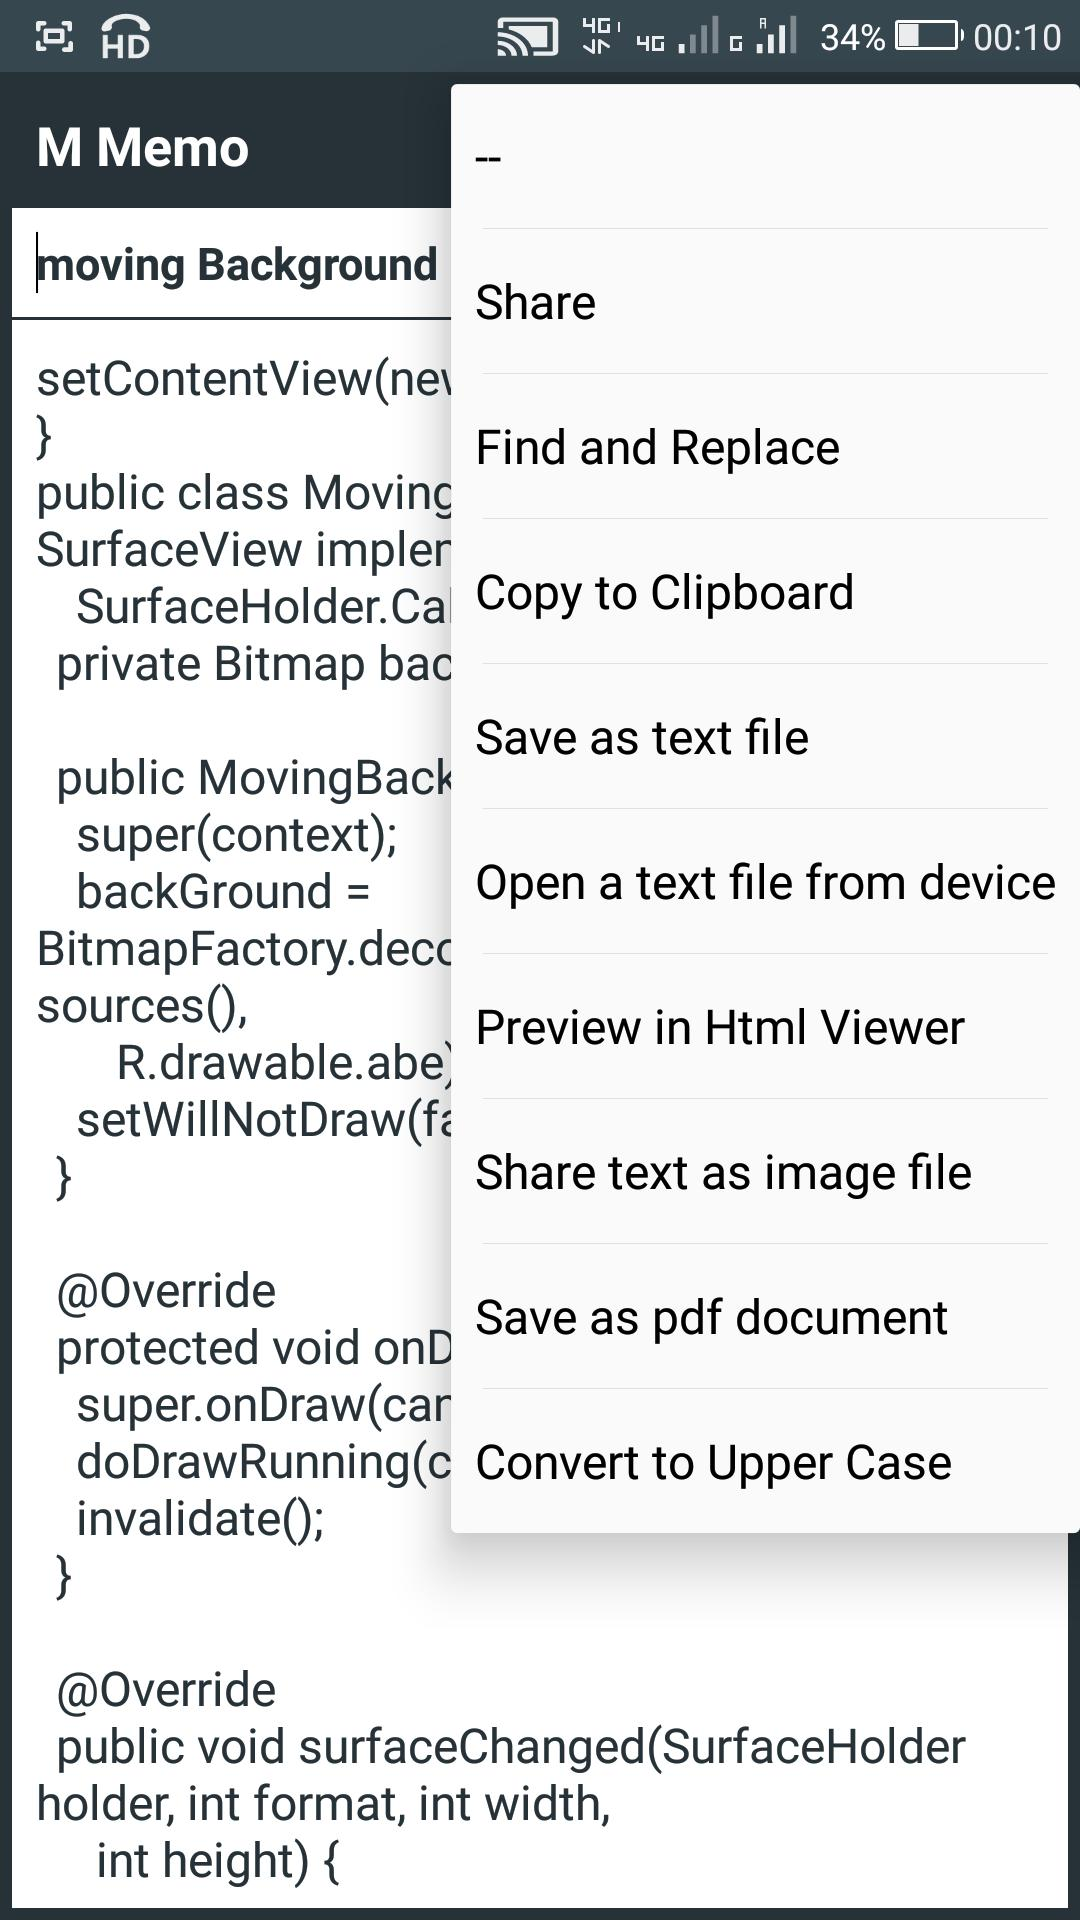 M Memo for Android - APK Download